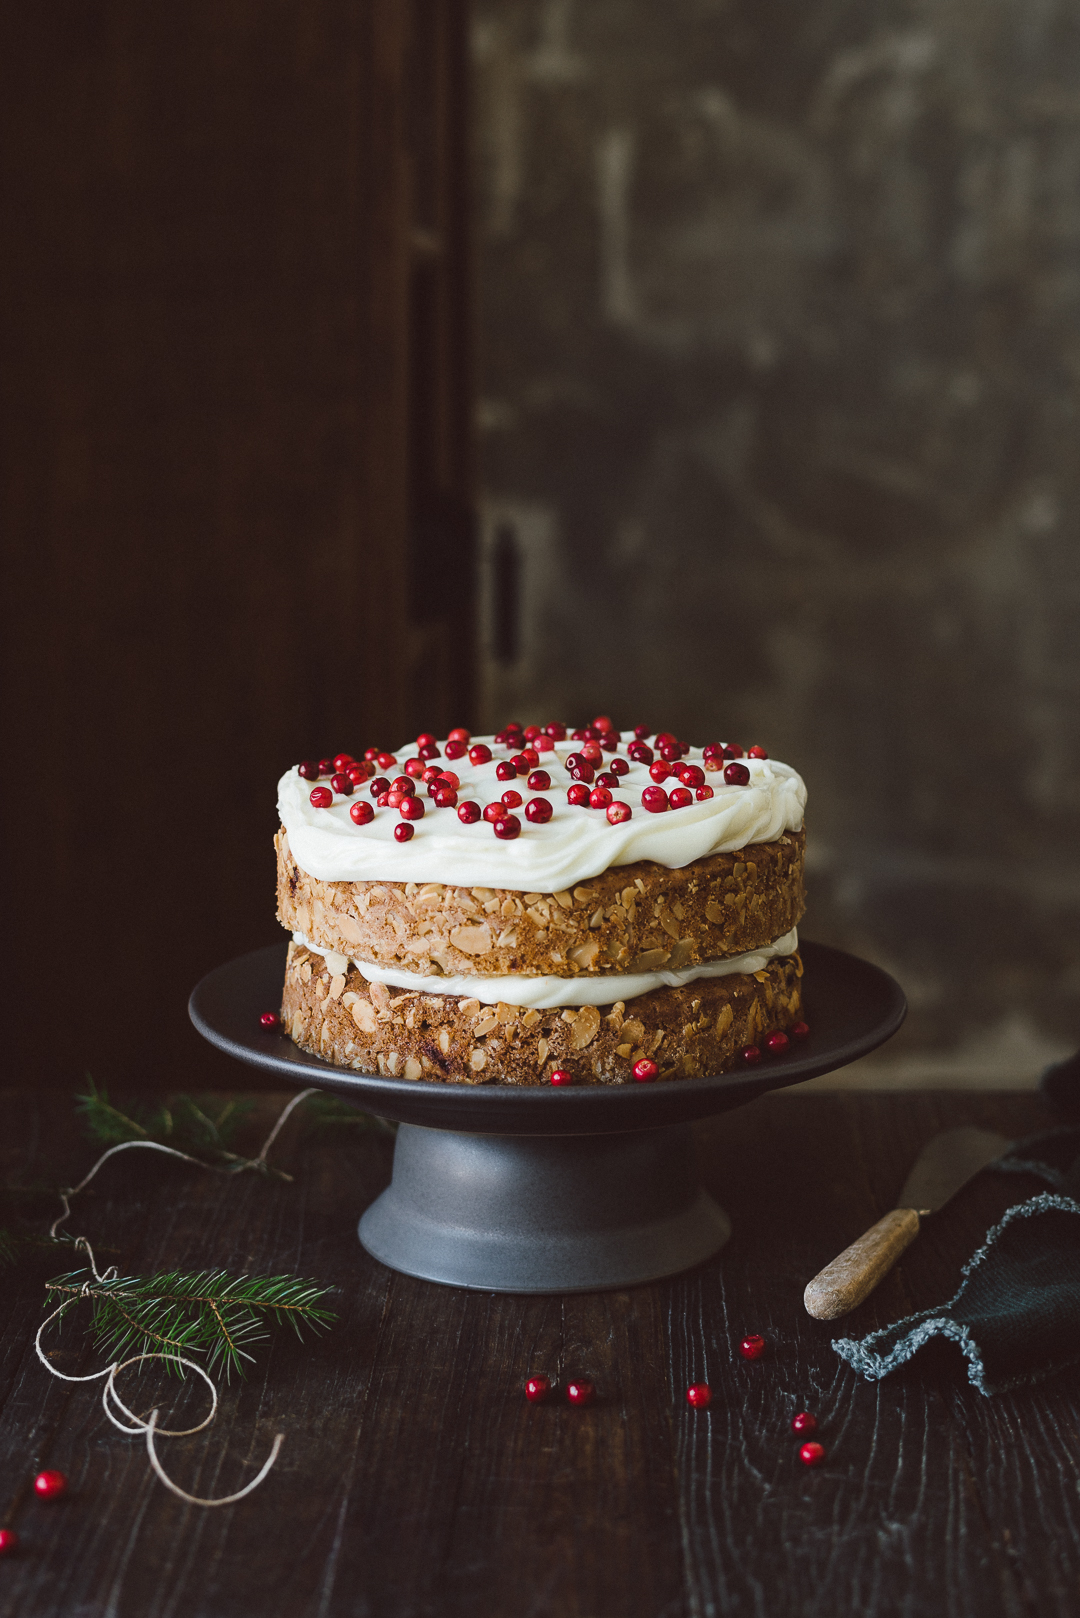 Christmas cake by Babes in Boyland